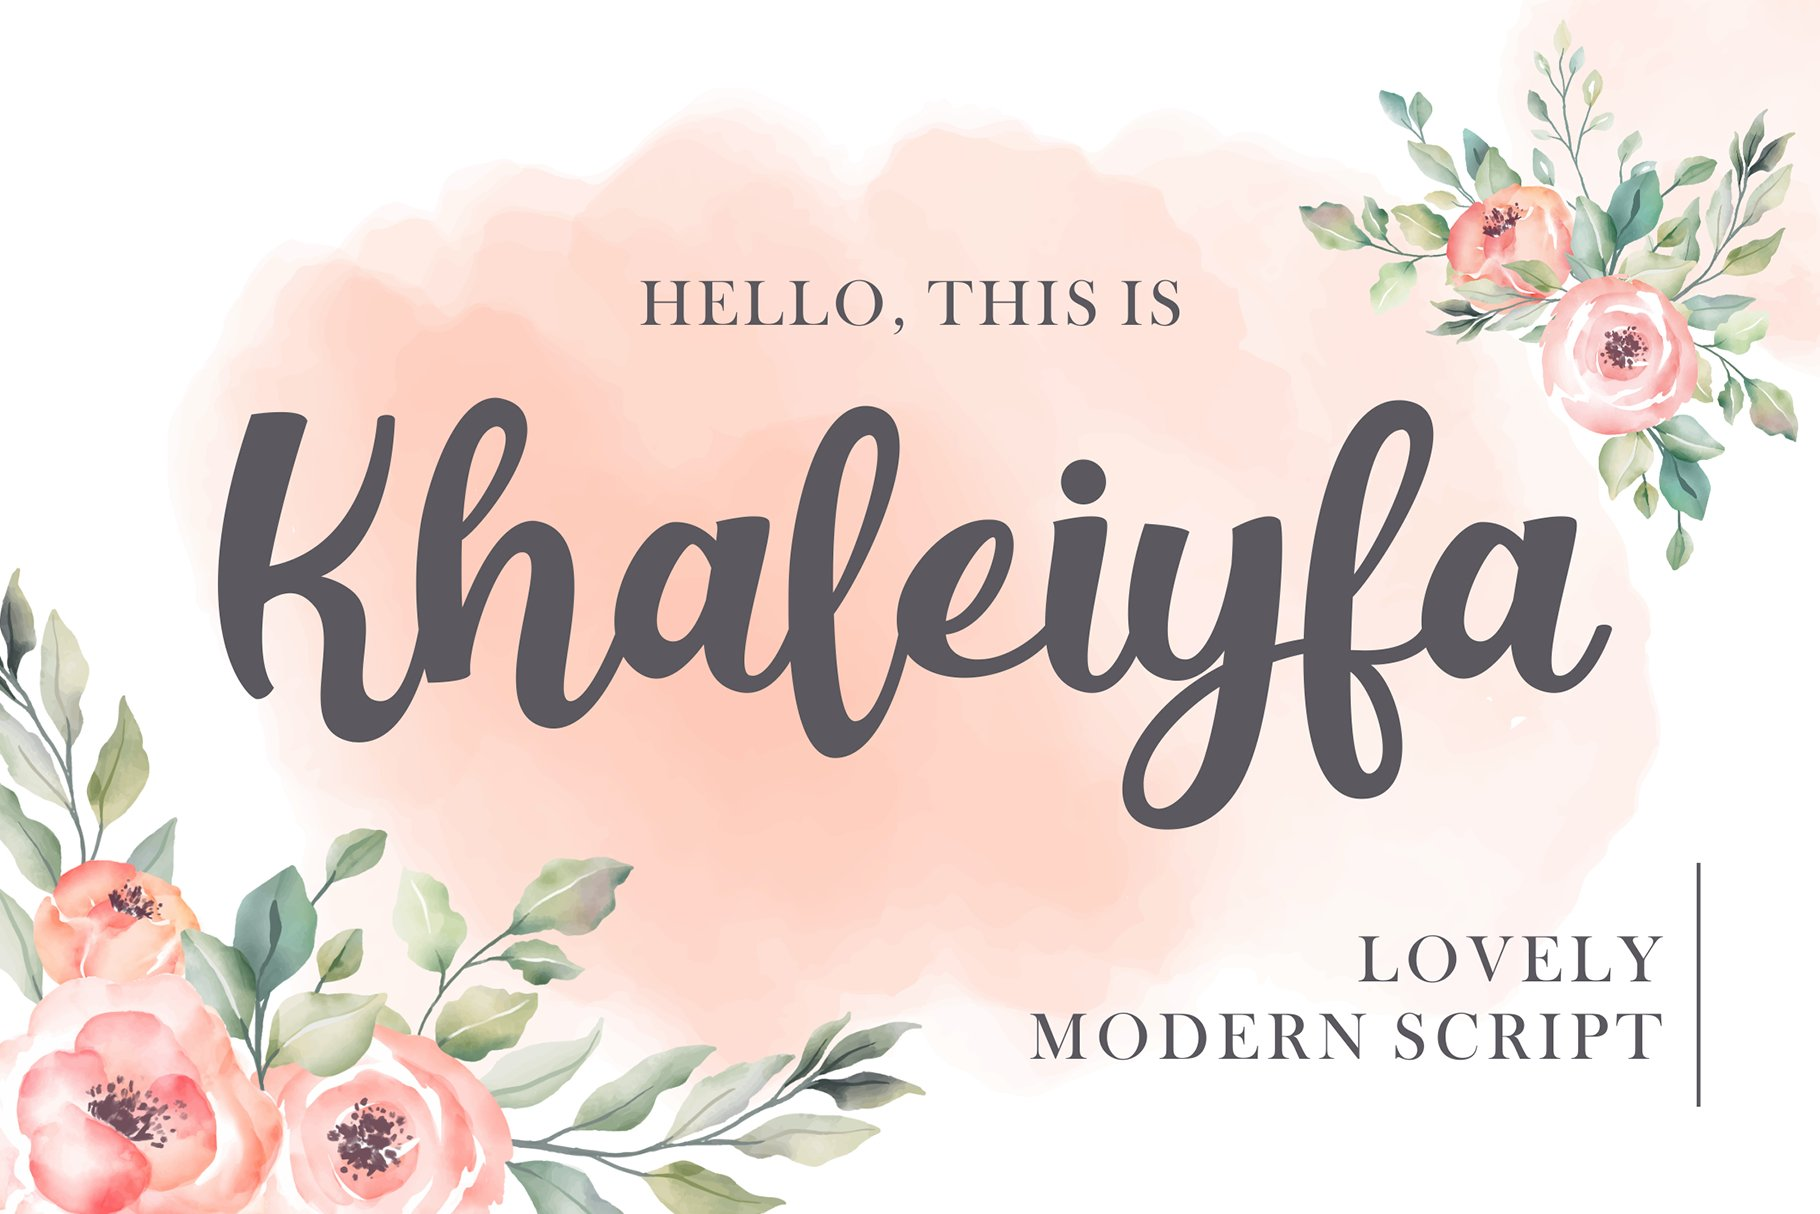 Awesome Crafting Font Bundle Vol. 2 example image 8